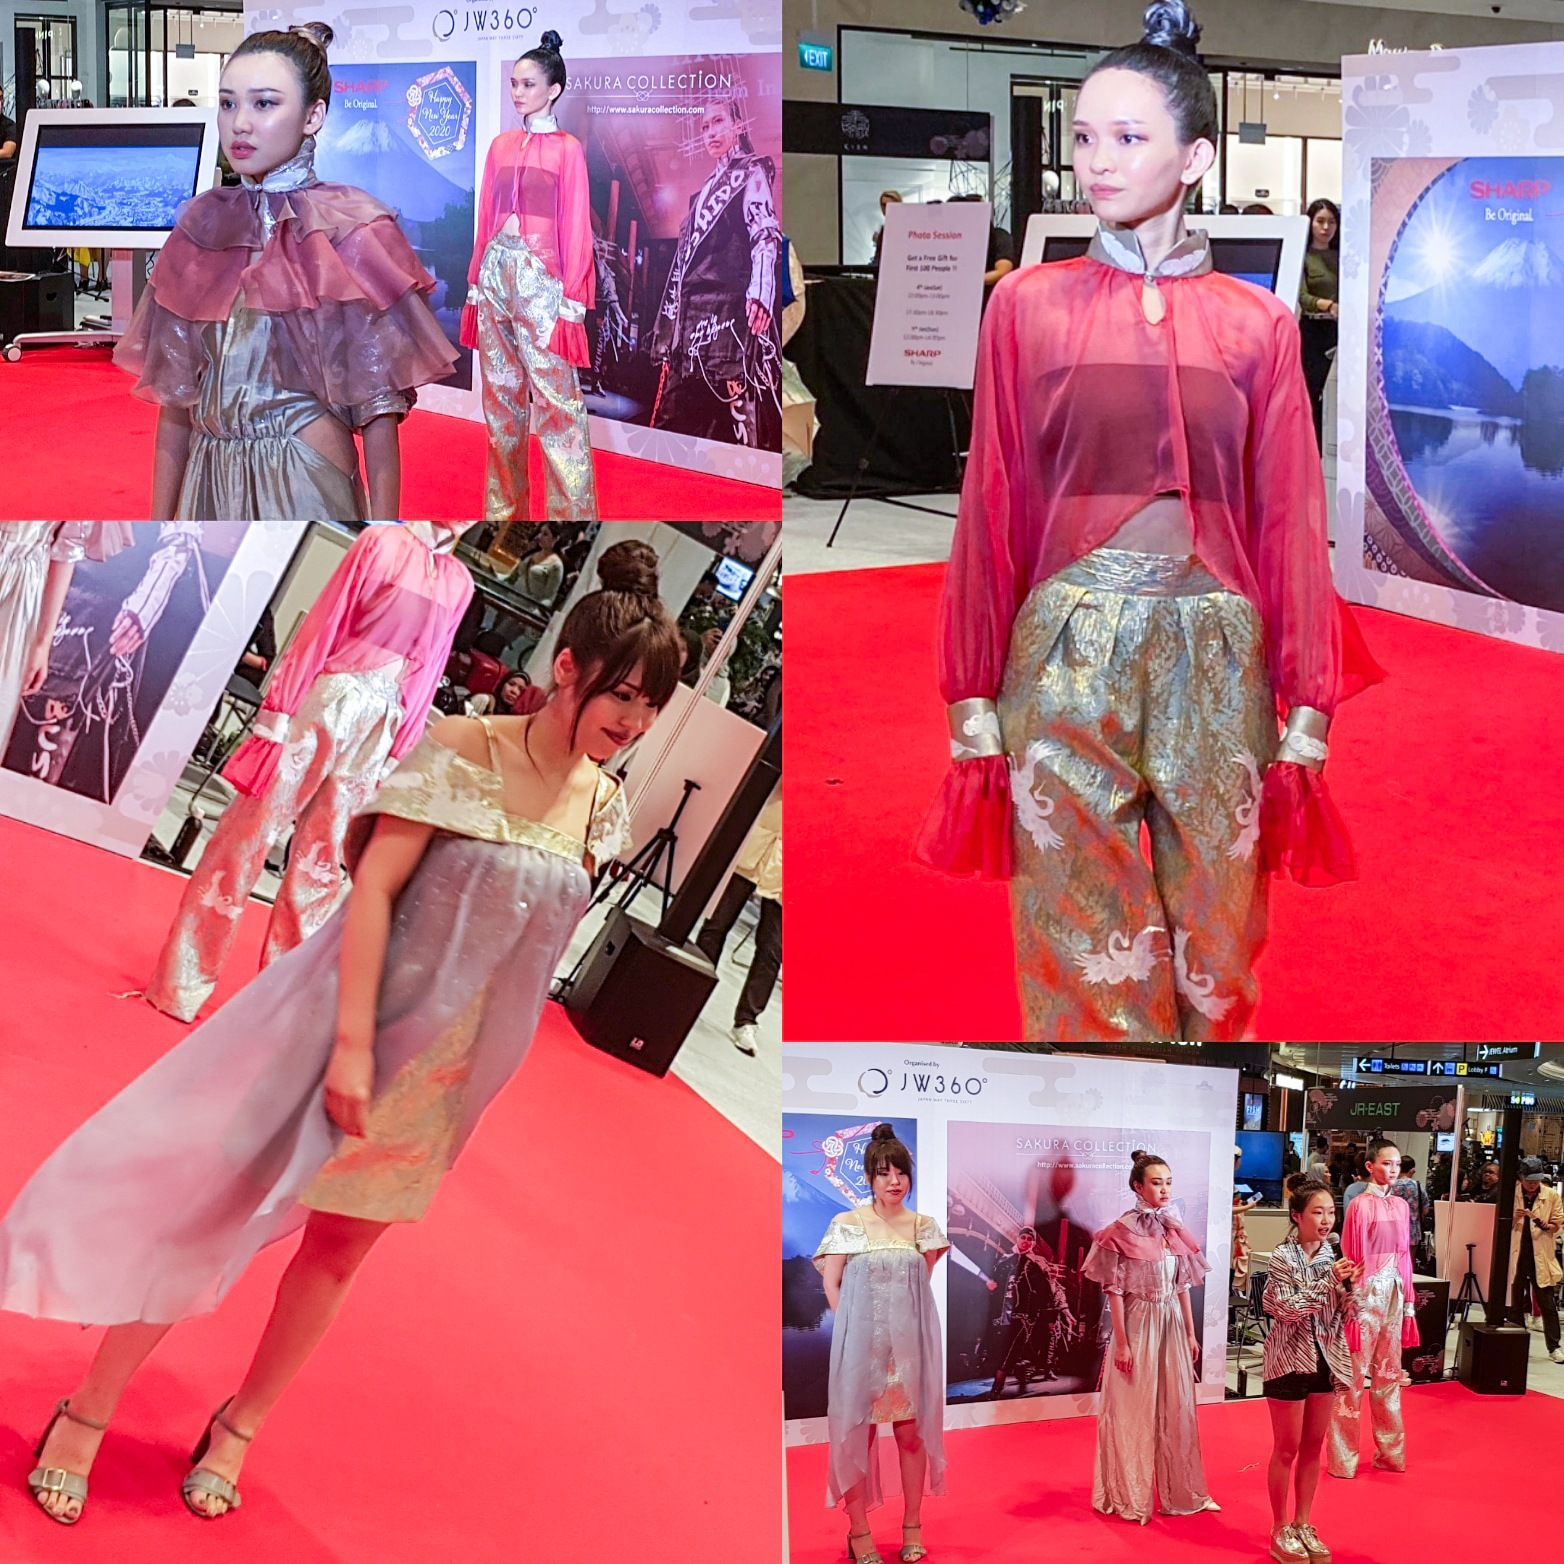 Sakura Collection Asia Student Awards 2020 Award ceremony Jewel Changi Airport International Modeling collections